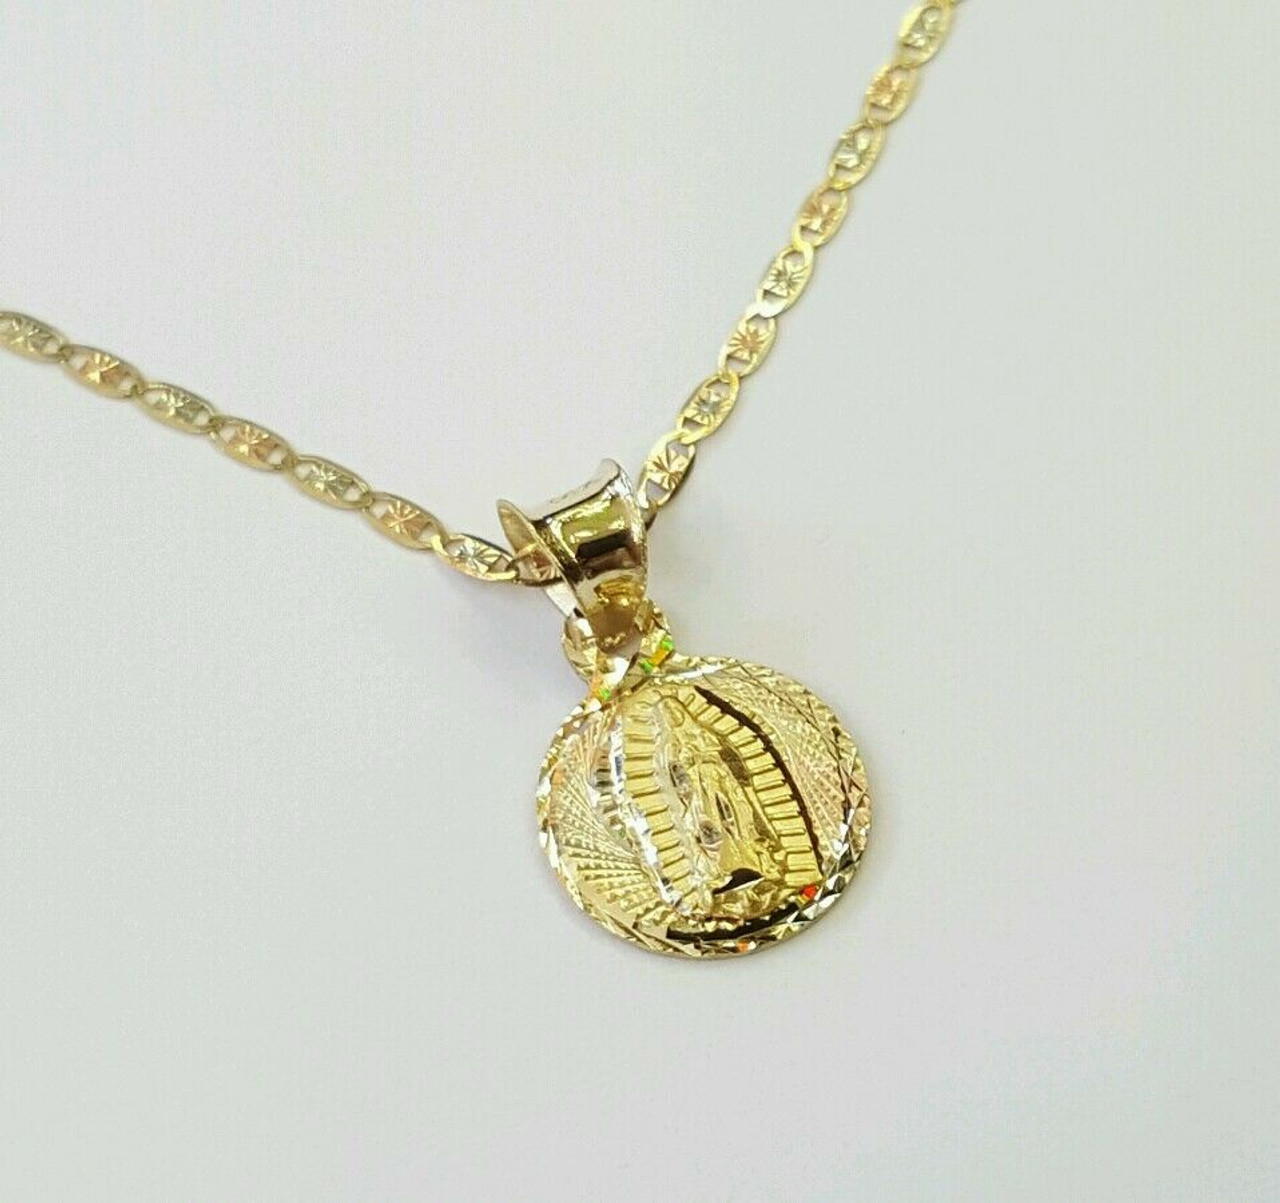 14k Yellow Real Gold Guadalupe Virgin Mary Baptism Smal Pendant Charm Free Chain